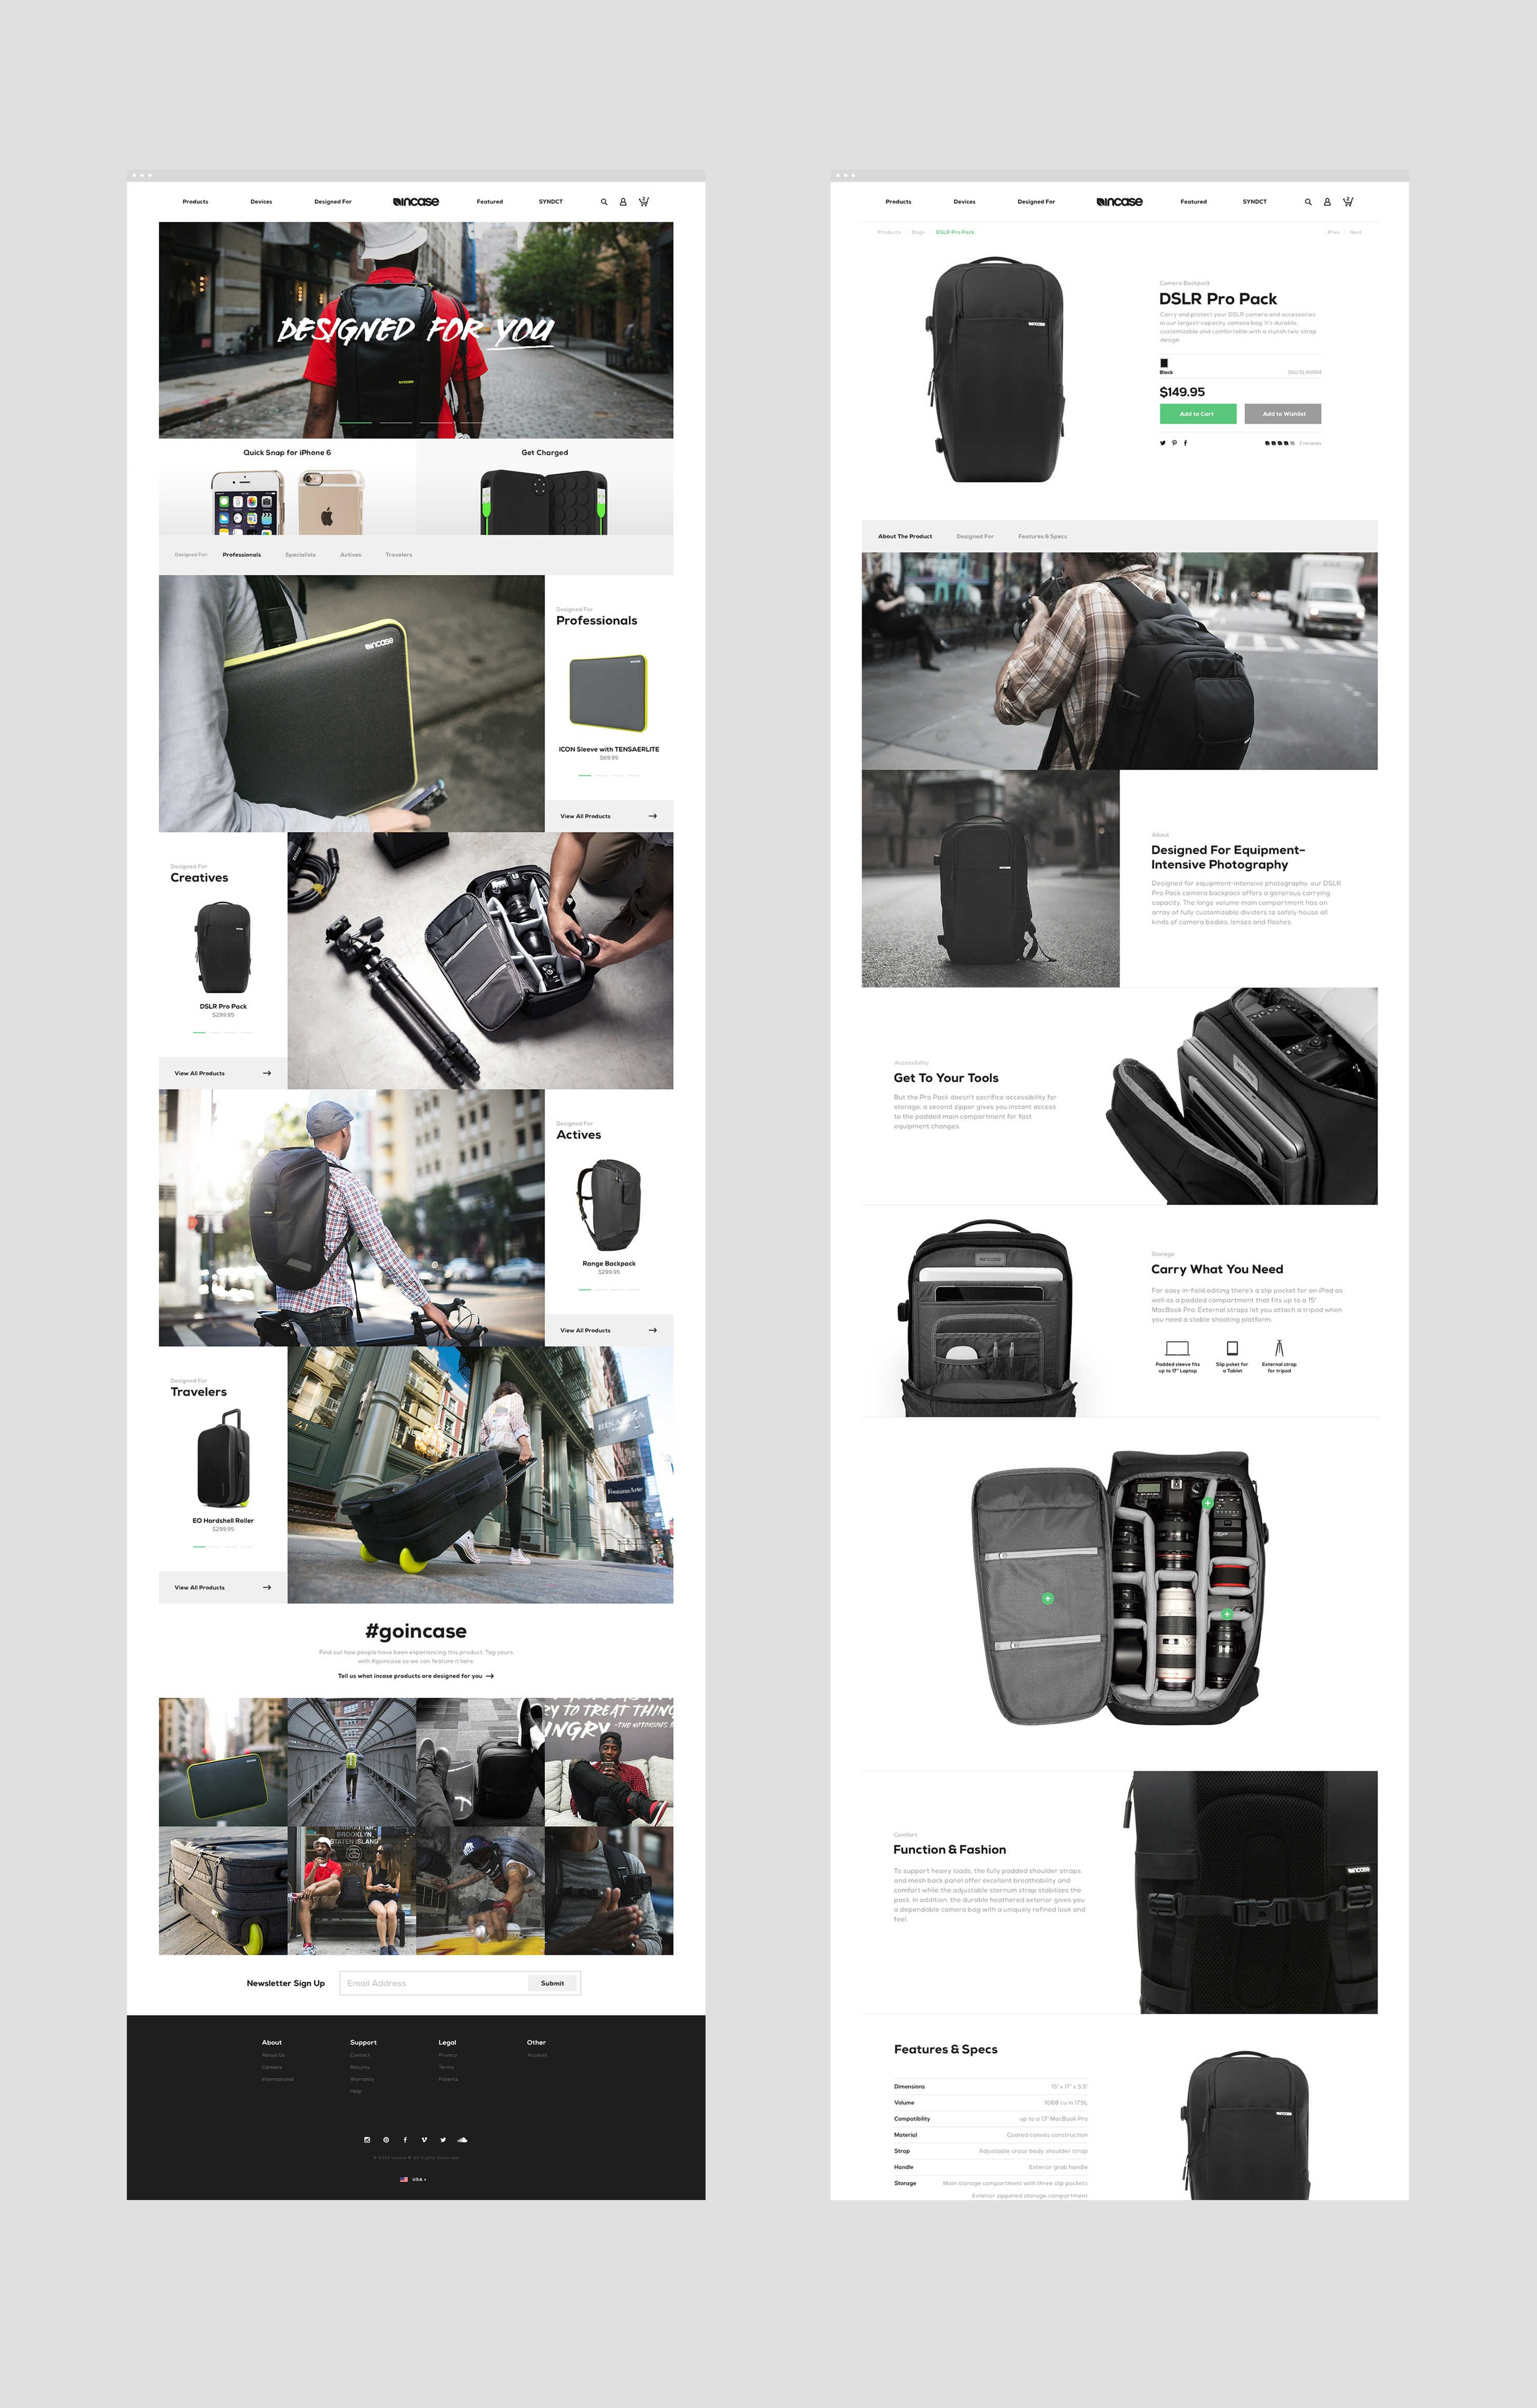 incase-brand-strategy-advertising by Basic agency